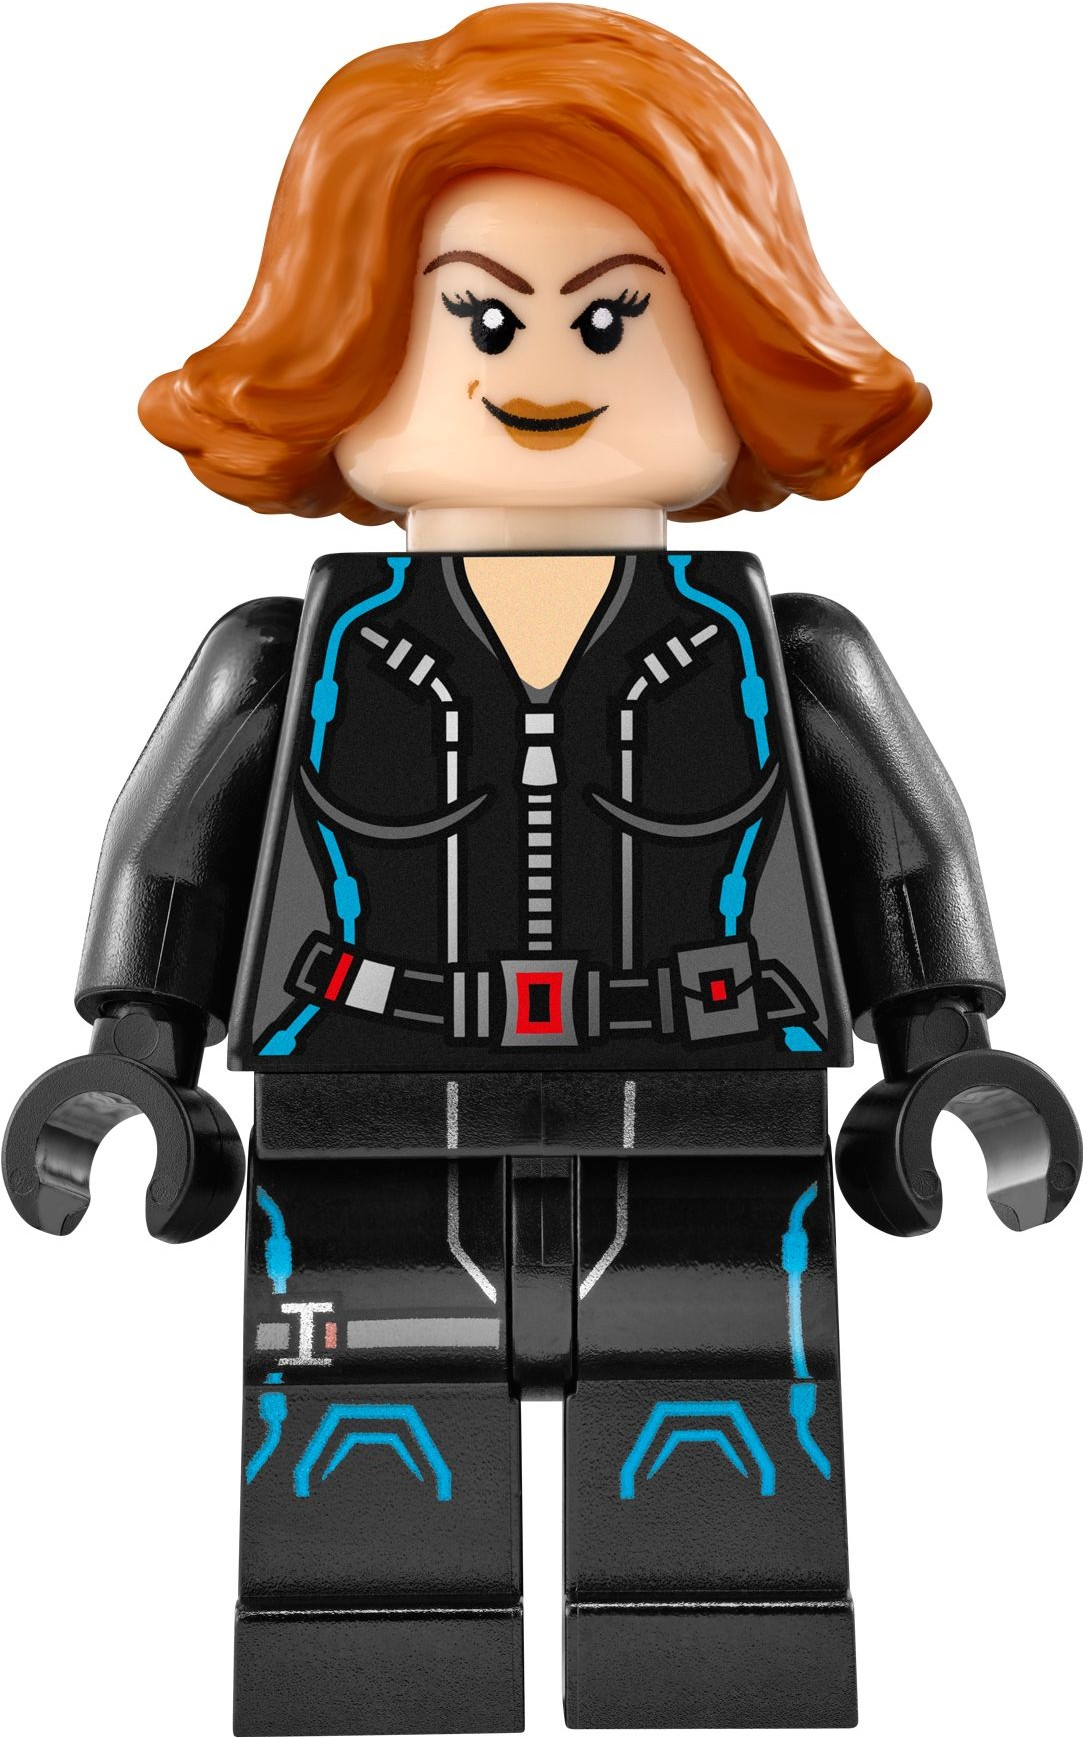 Lego Nick Fury from Set 76042 SHIELD Helicarrier Super Hereos BRAND NEW sh185